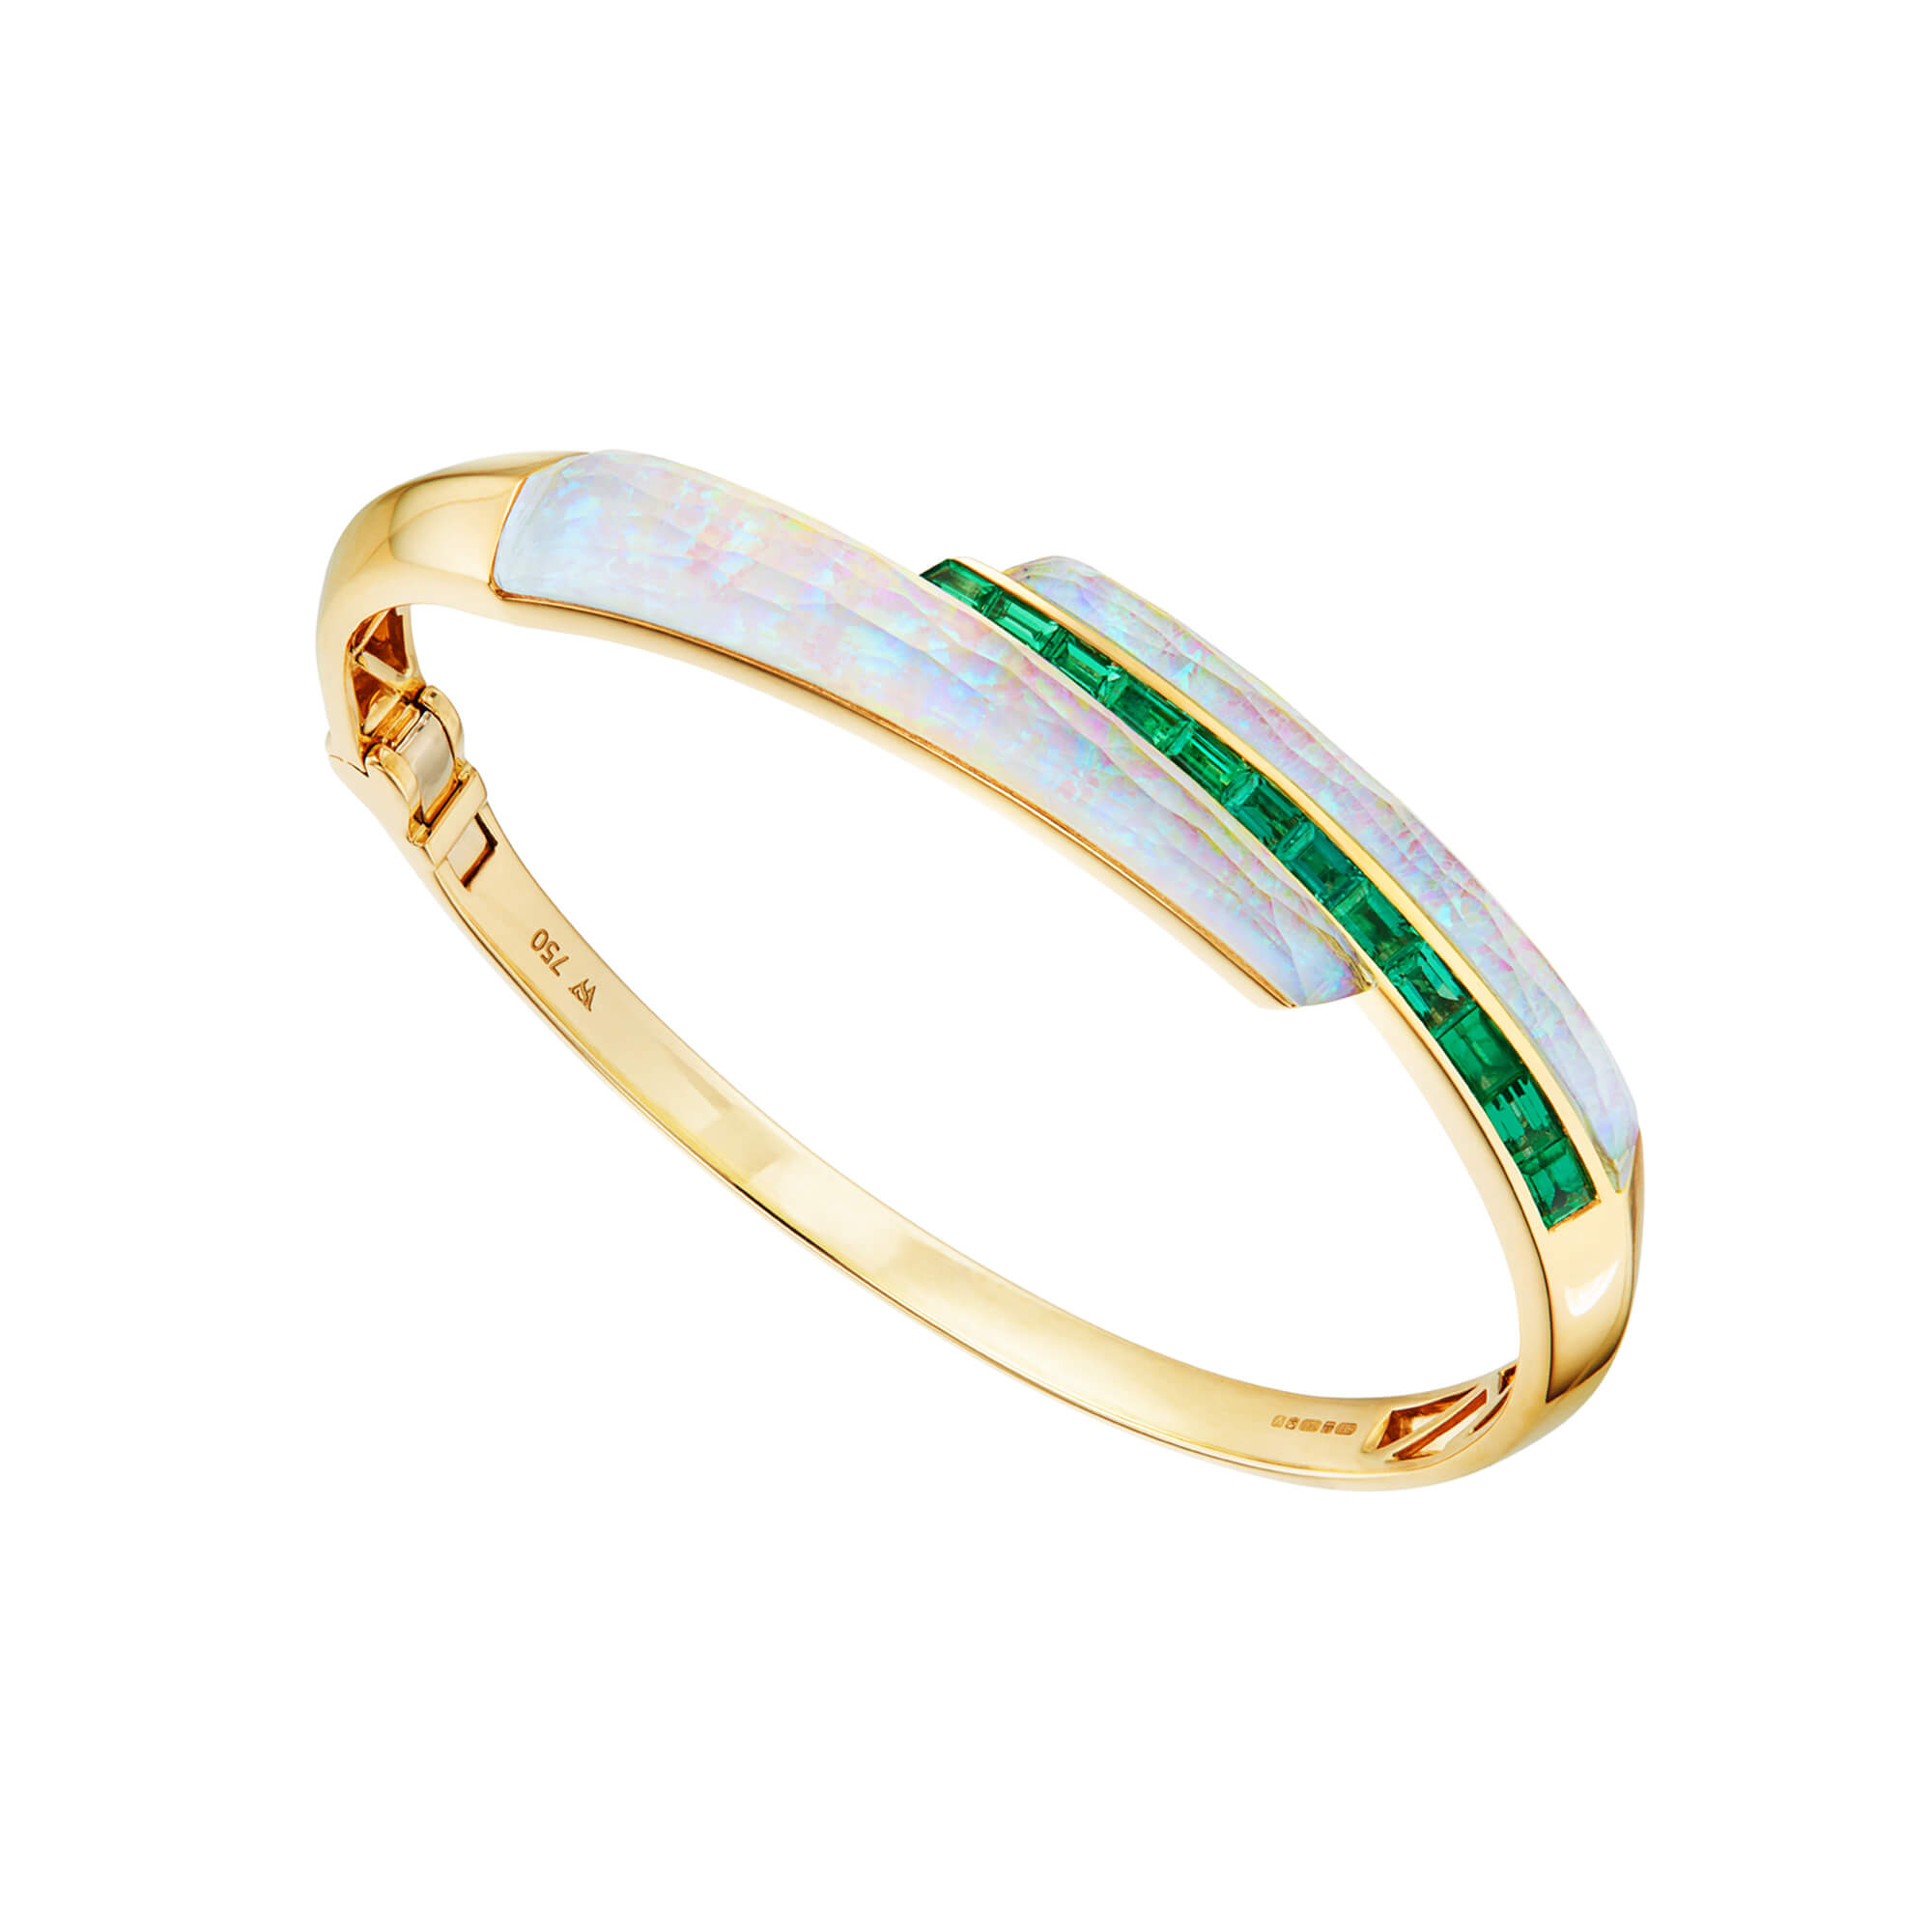 White Opalescent Crystal Haze and Emeralds Shard Bangle | CH₂